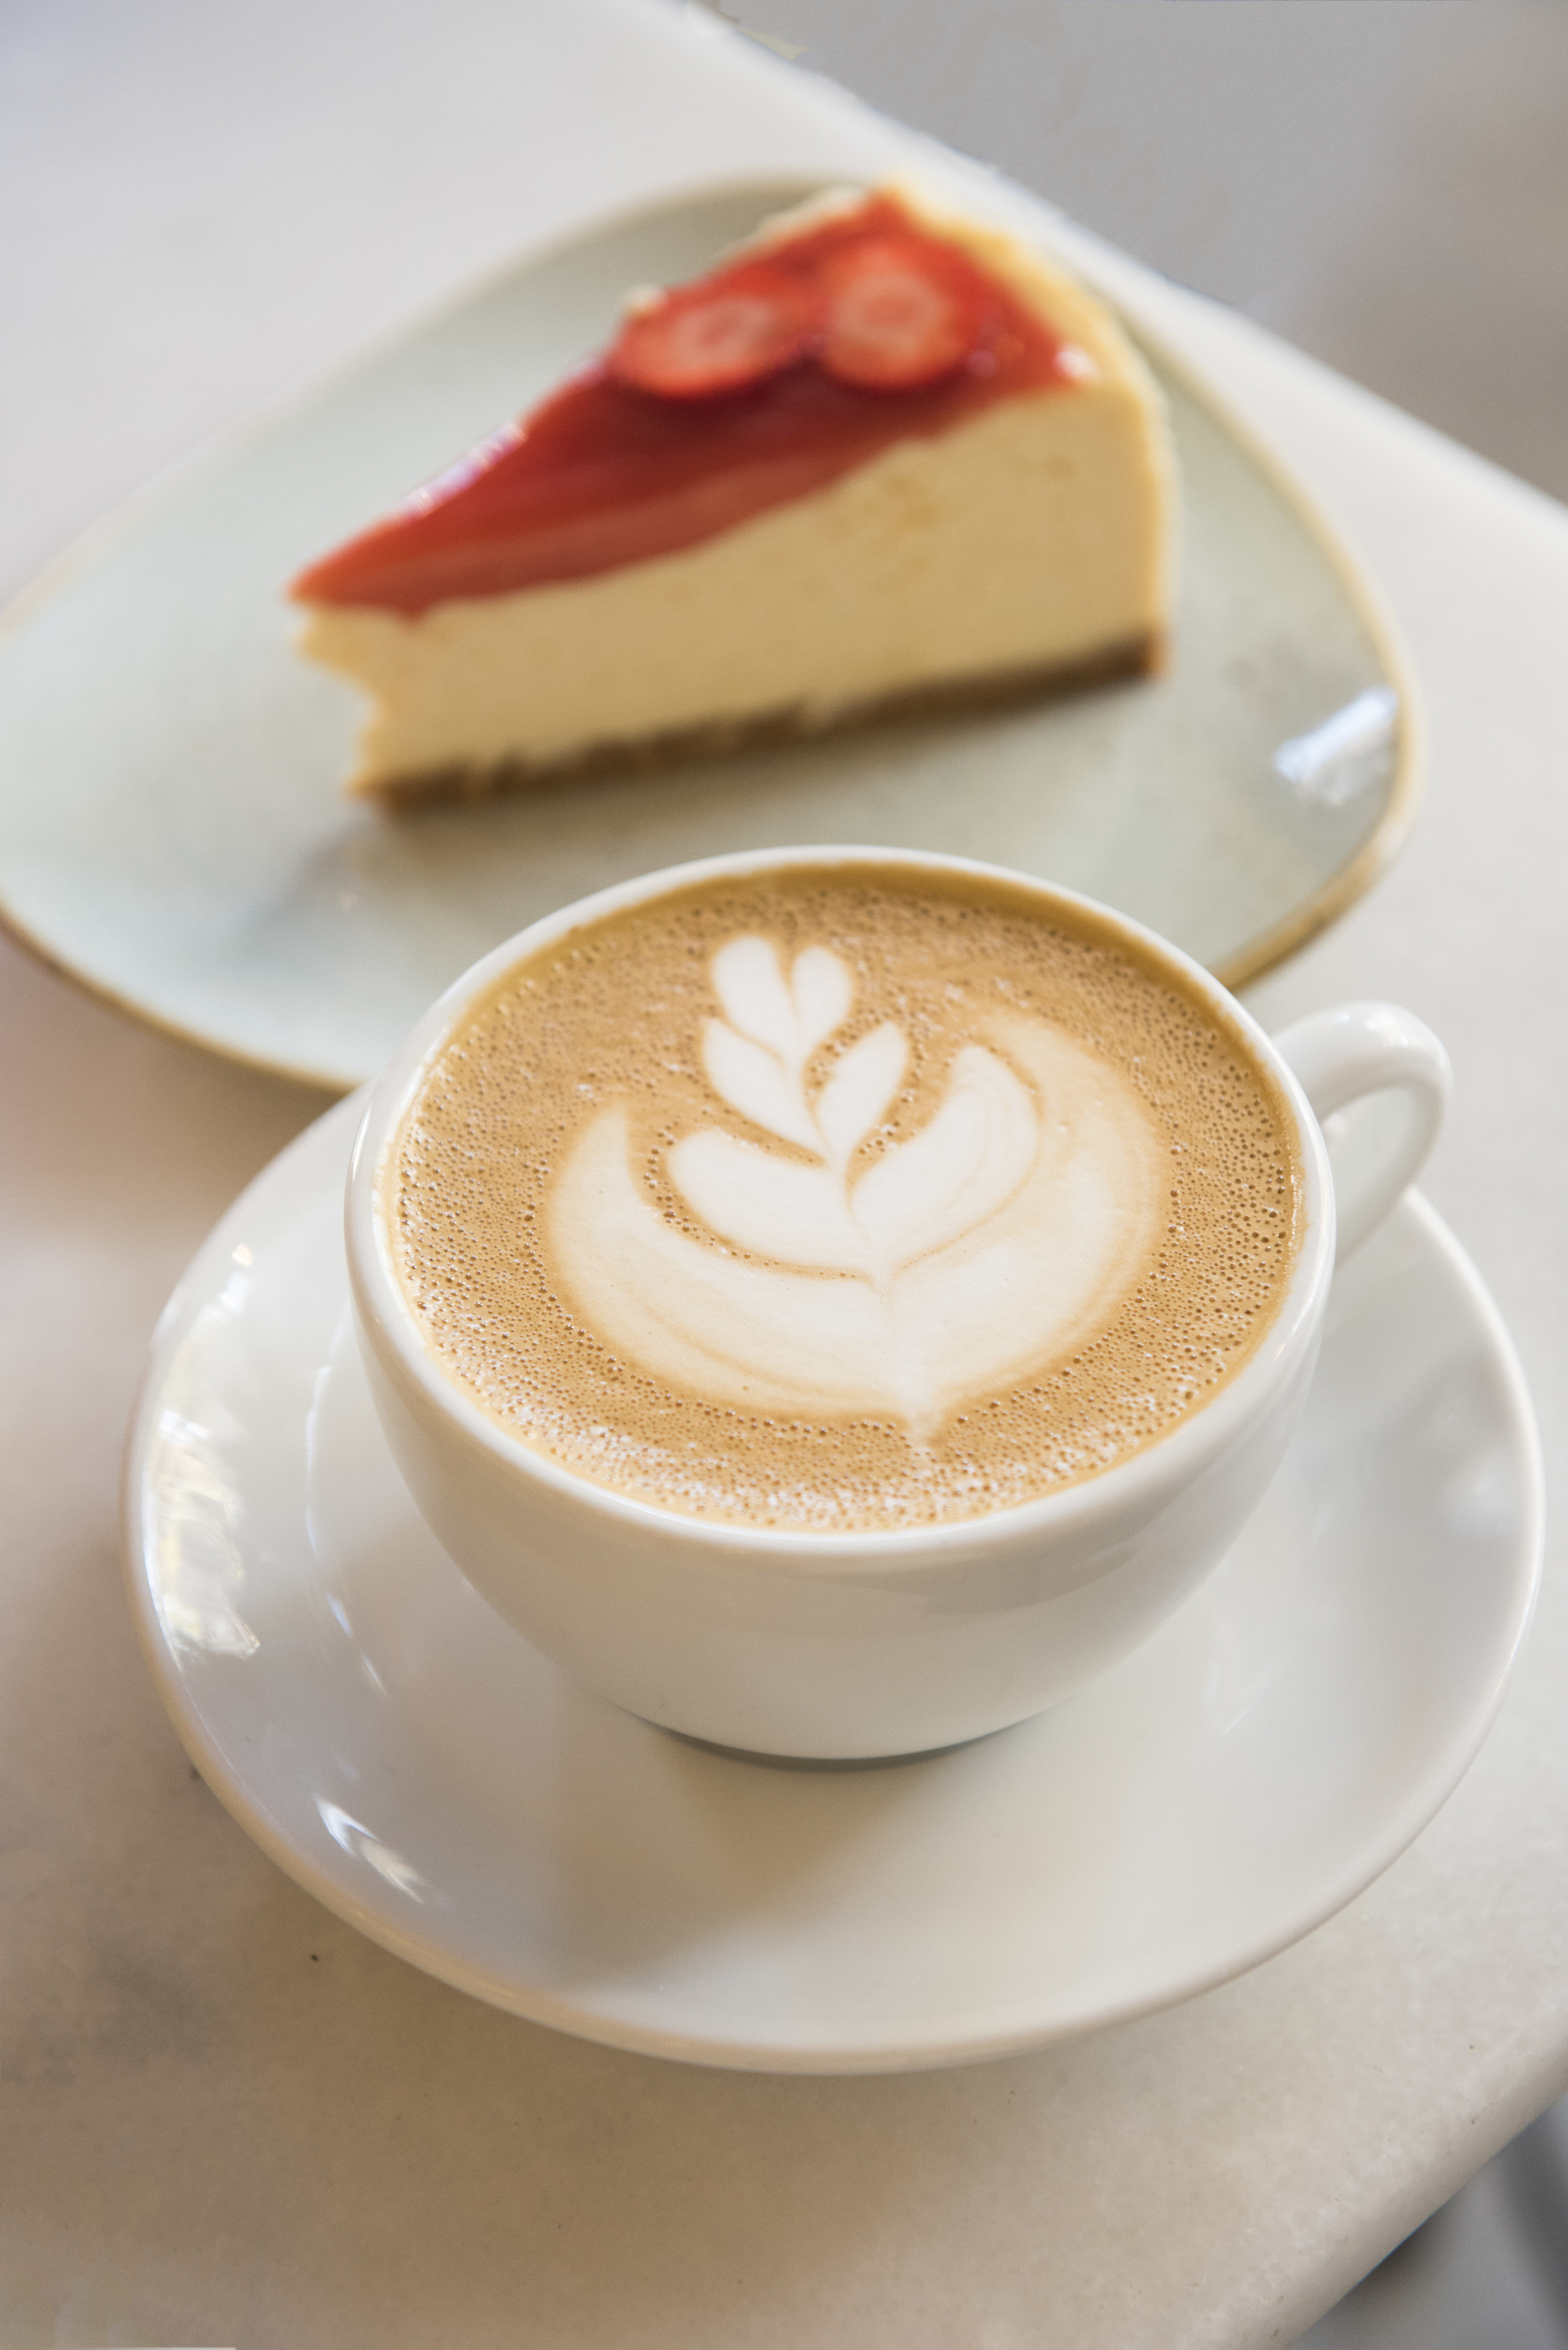 Coffee and cheesecake at Oma Bistro Barcelona